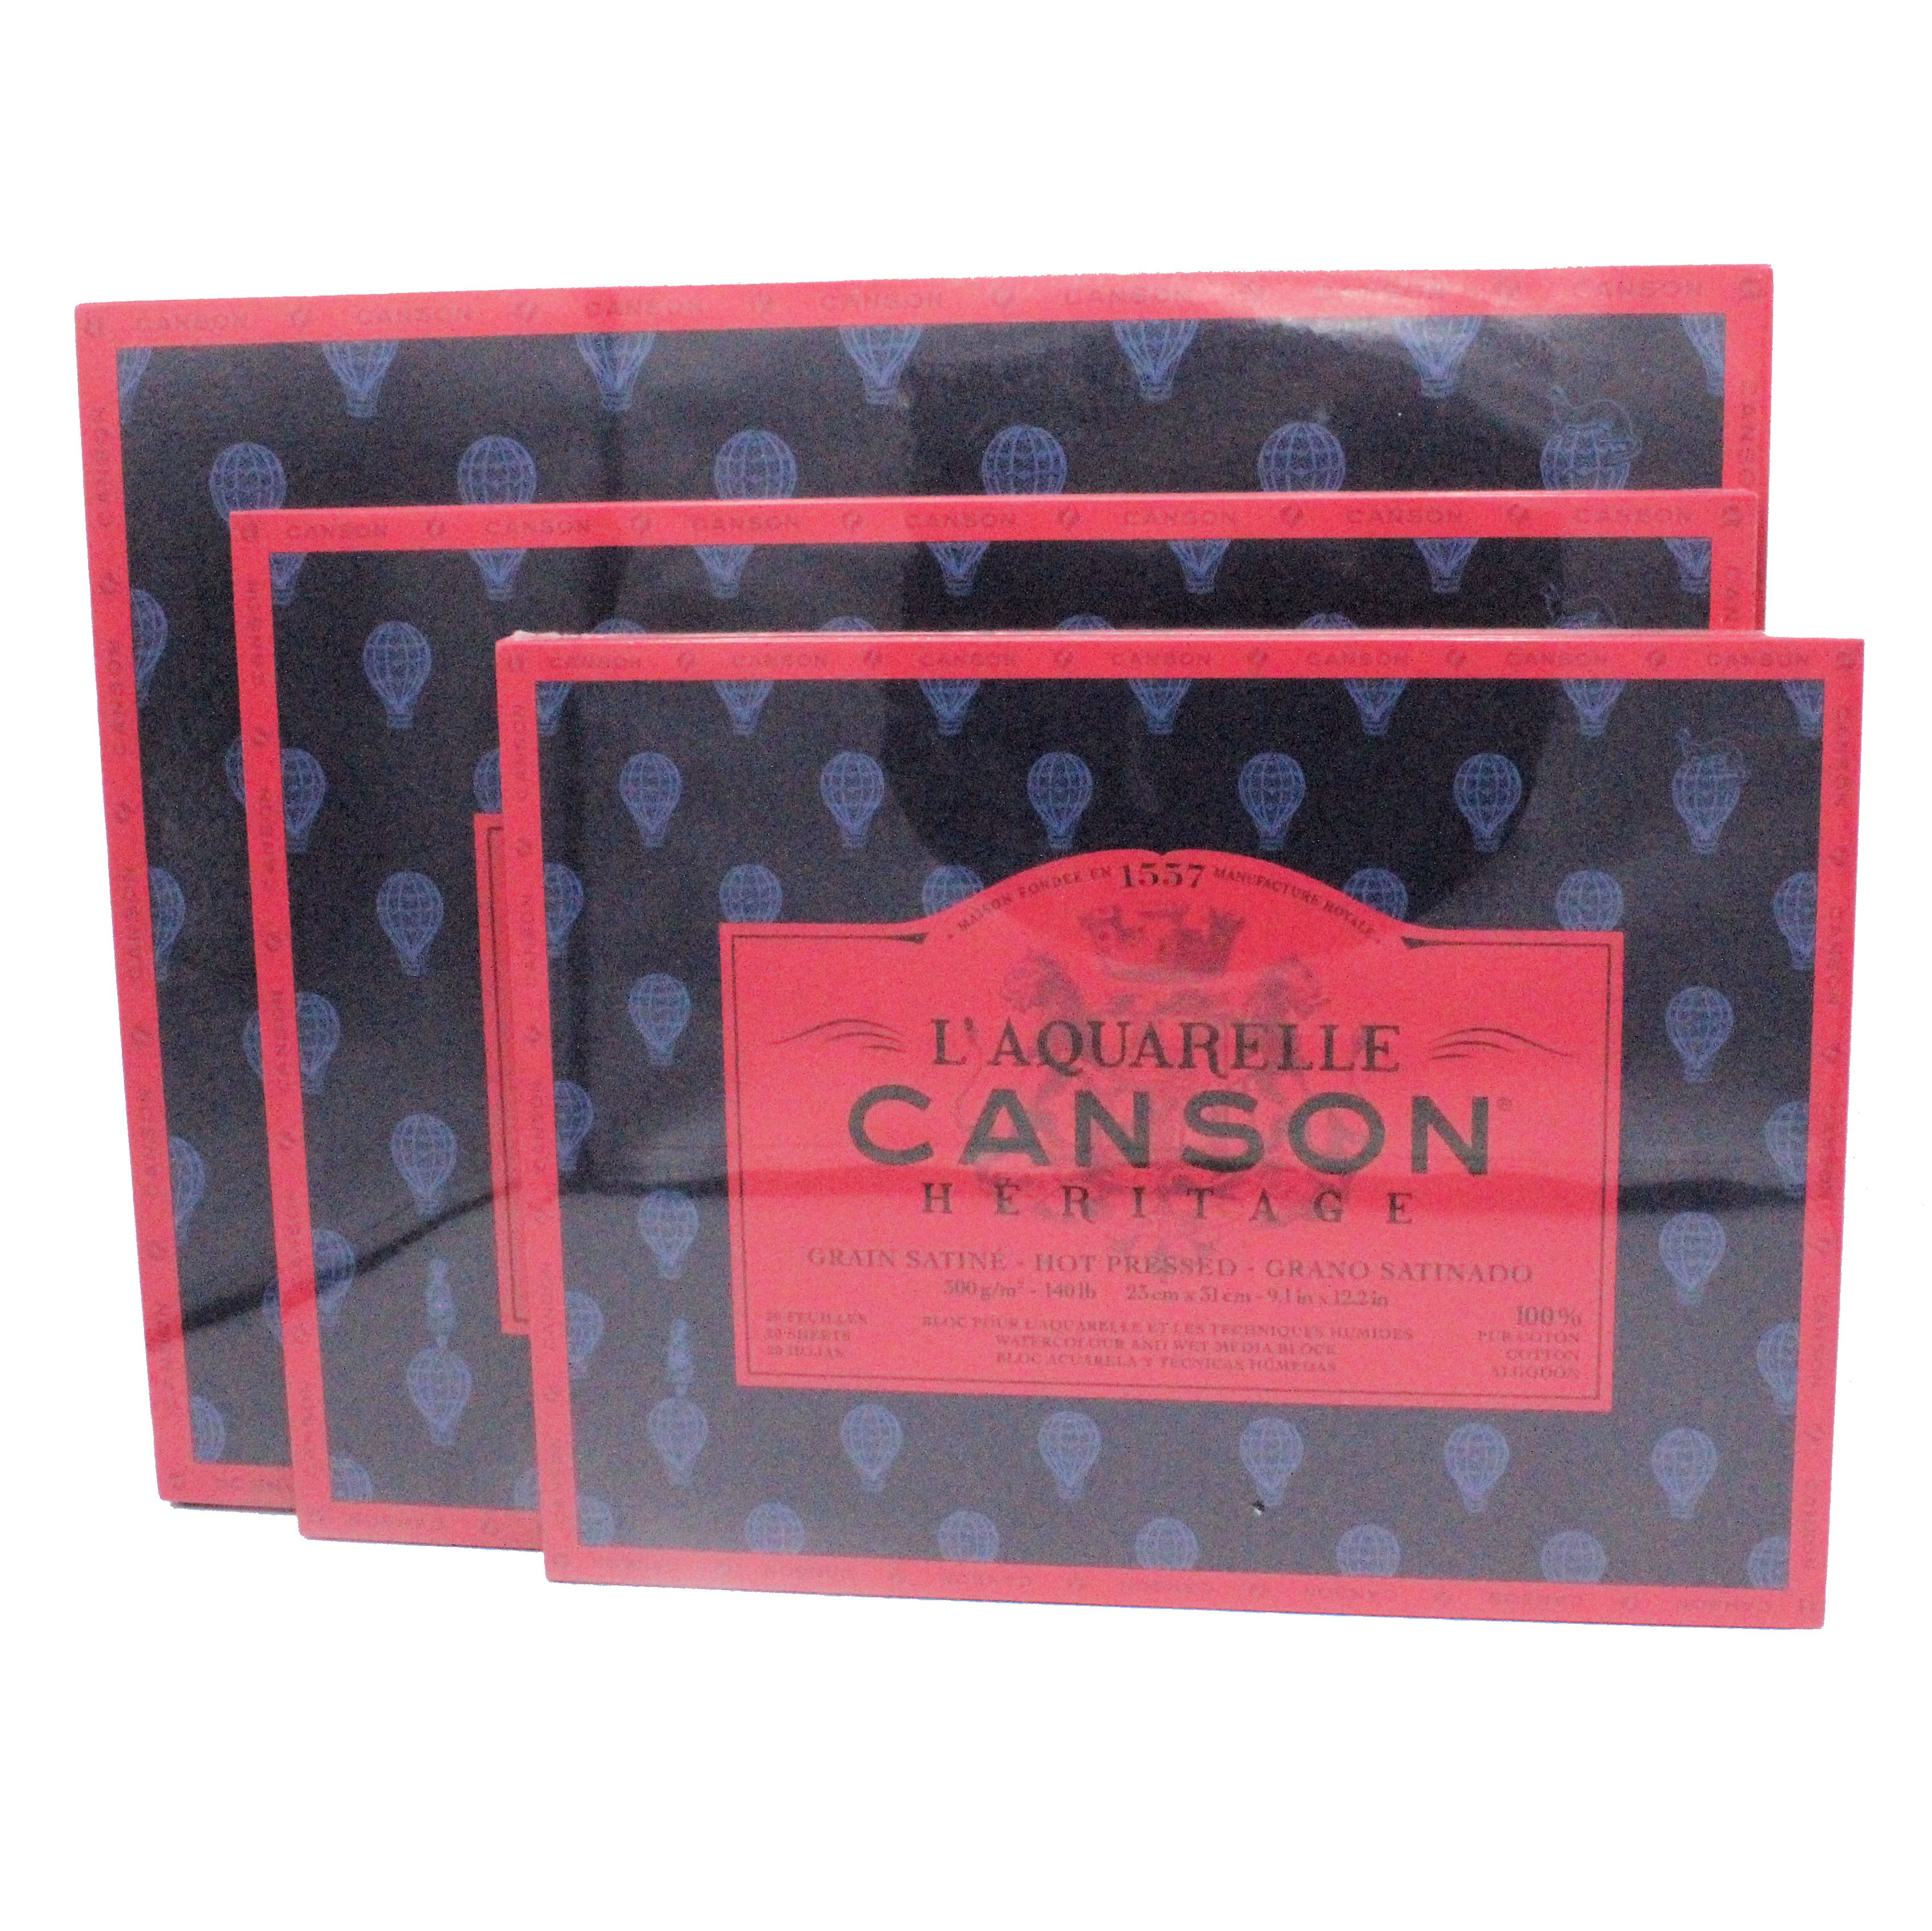 Canson Heritage Hotpress Block watercolour paper